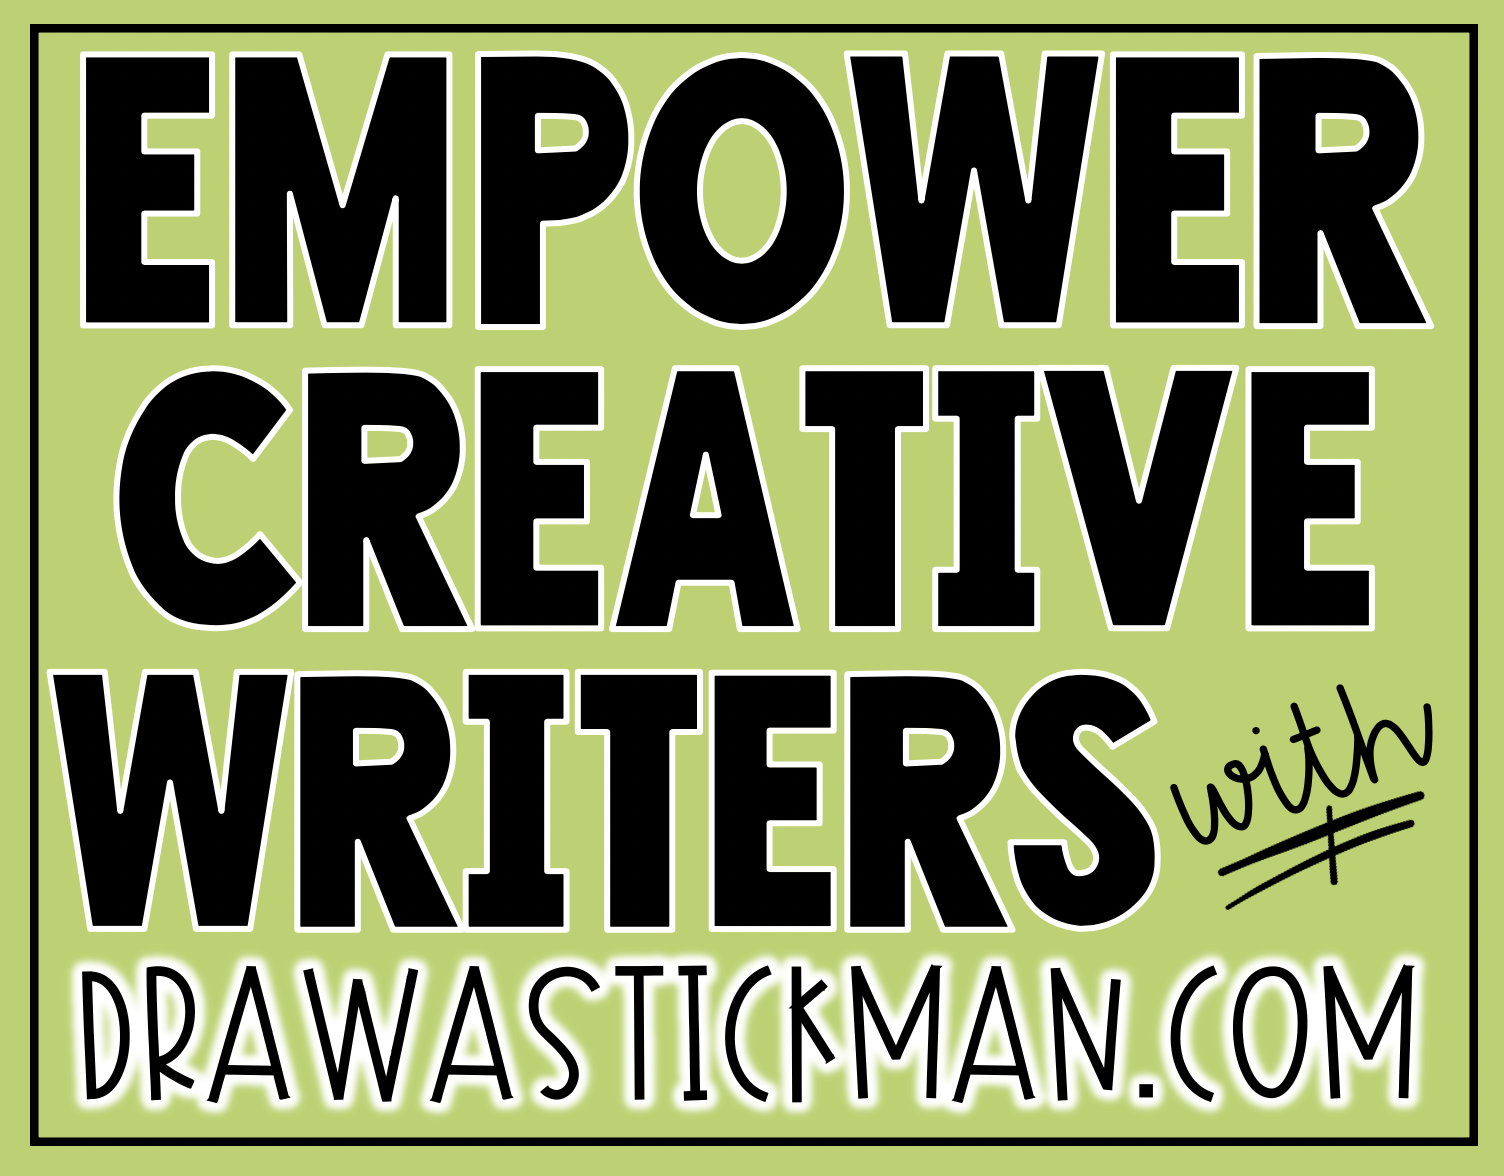 Are you looking for ways to turn your students into CREATIVE writers? Empower students to explore their creativity with the free website, drawastickman.com. They will absolutely love this quick and easy activity!